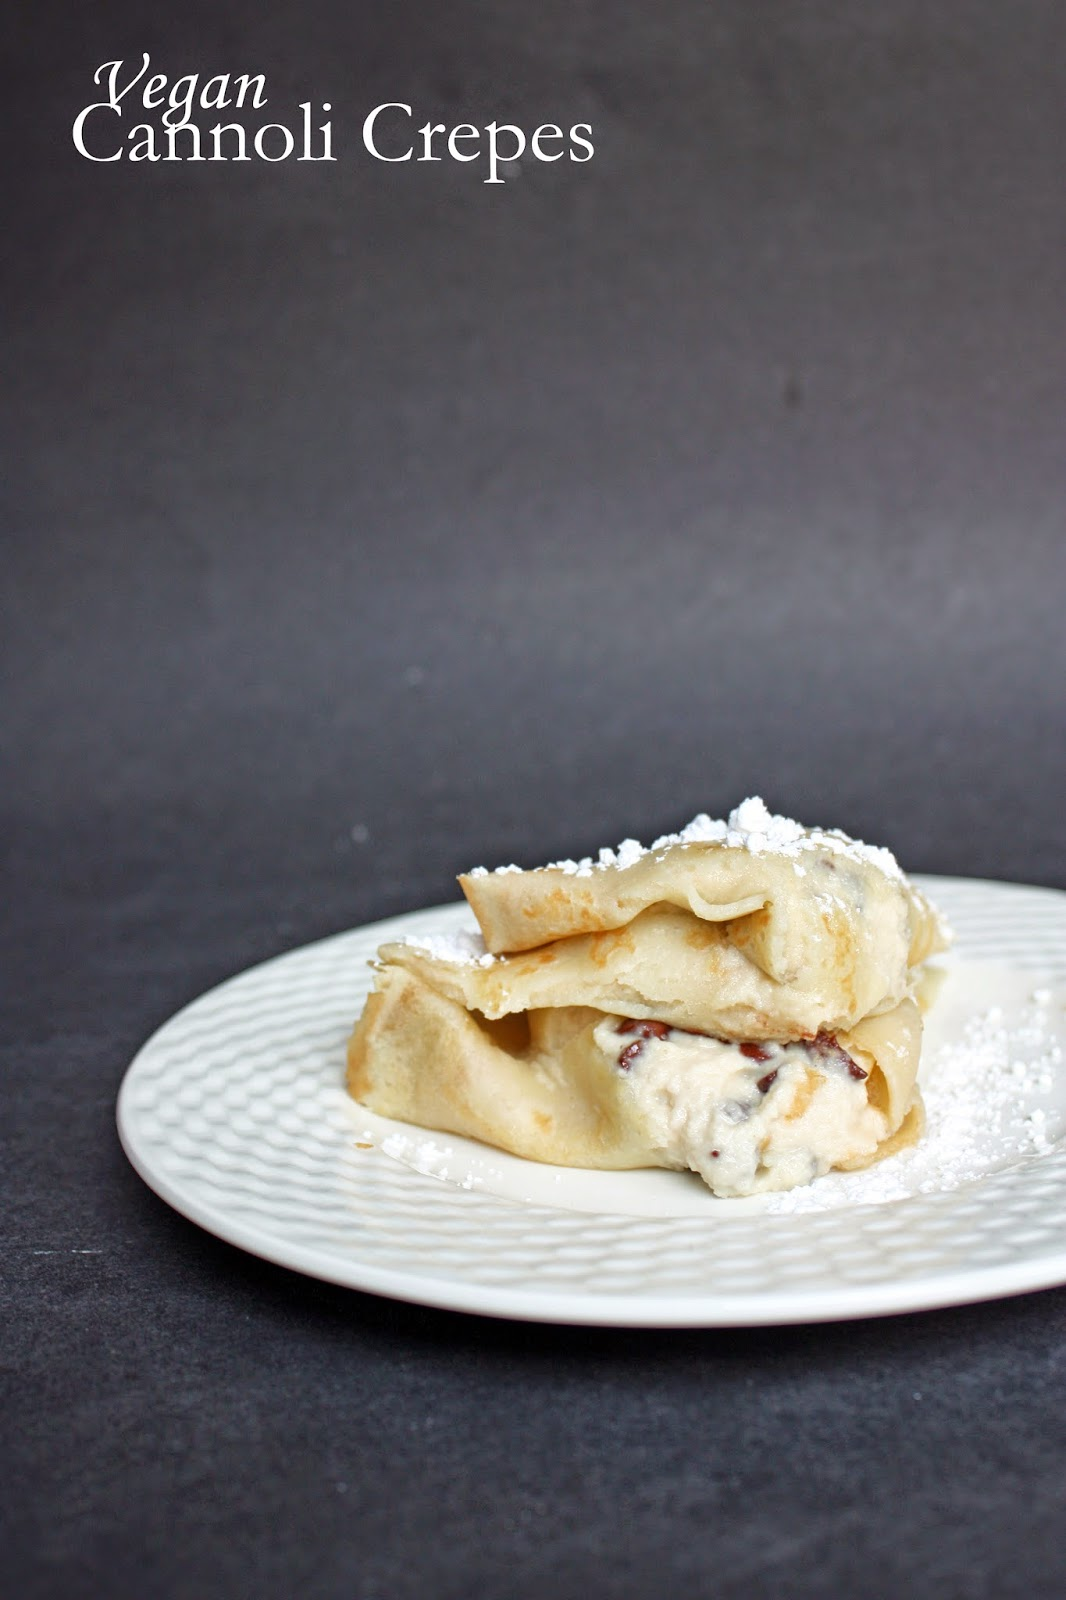 Vegan cannoli crepes